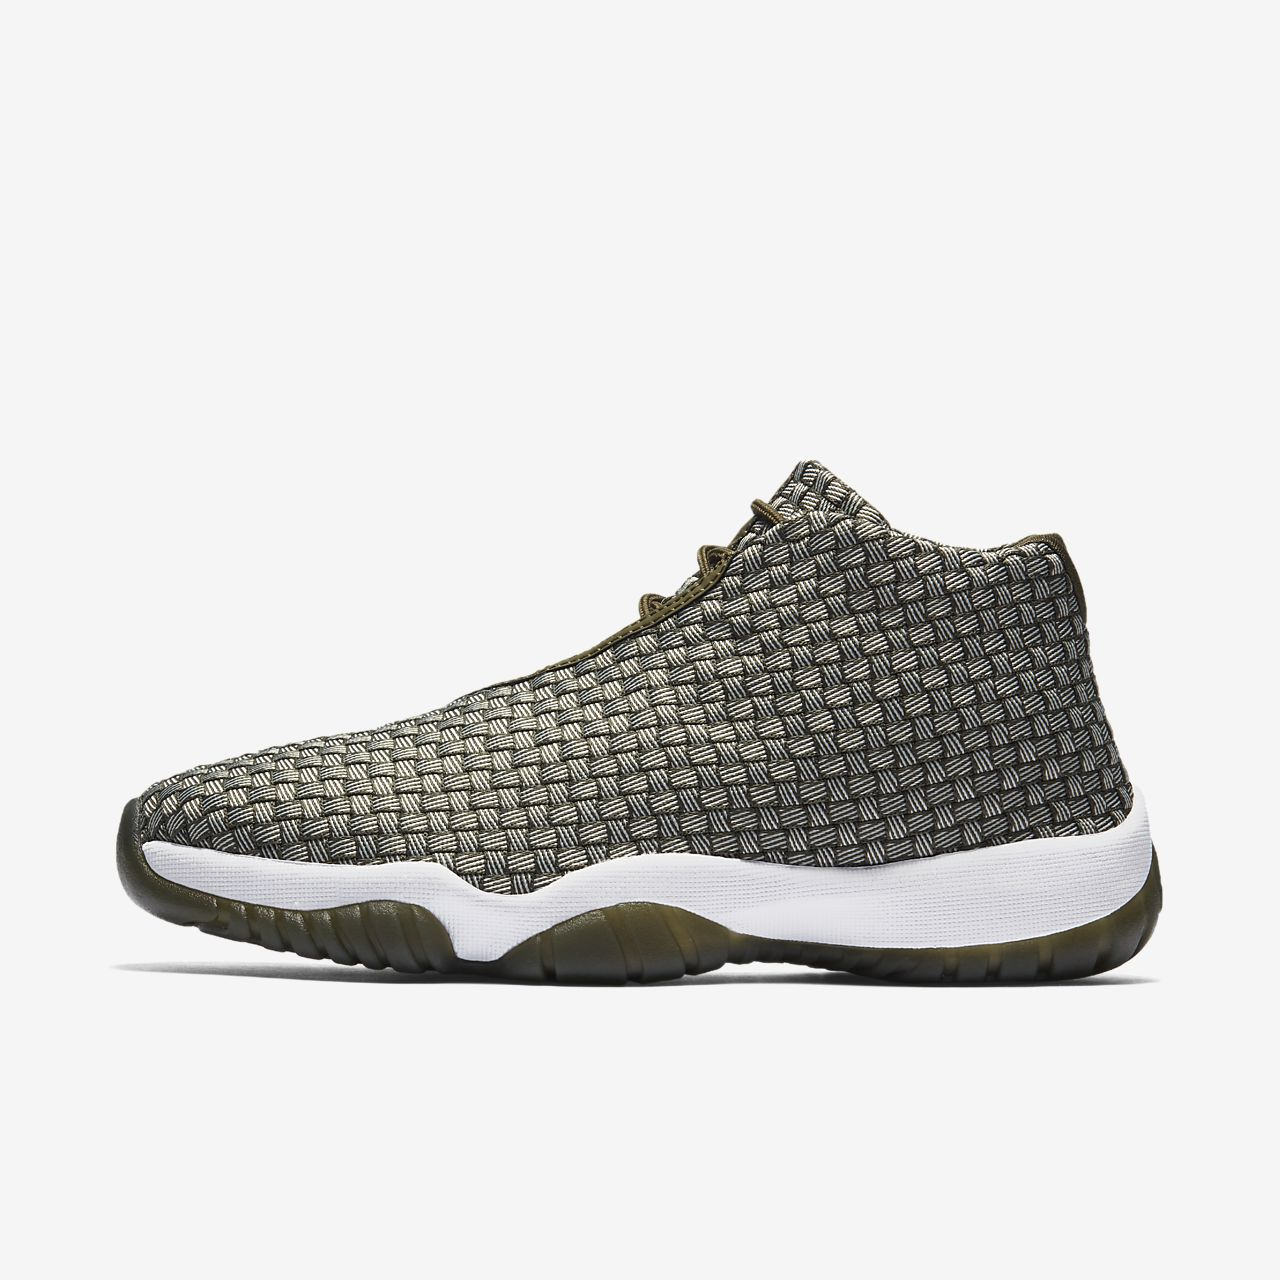 Nike Air Jordan Future Woven Olive Dark Green 656503 305 Men